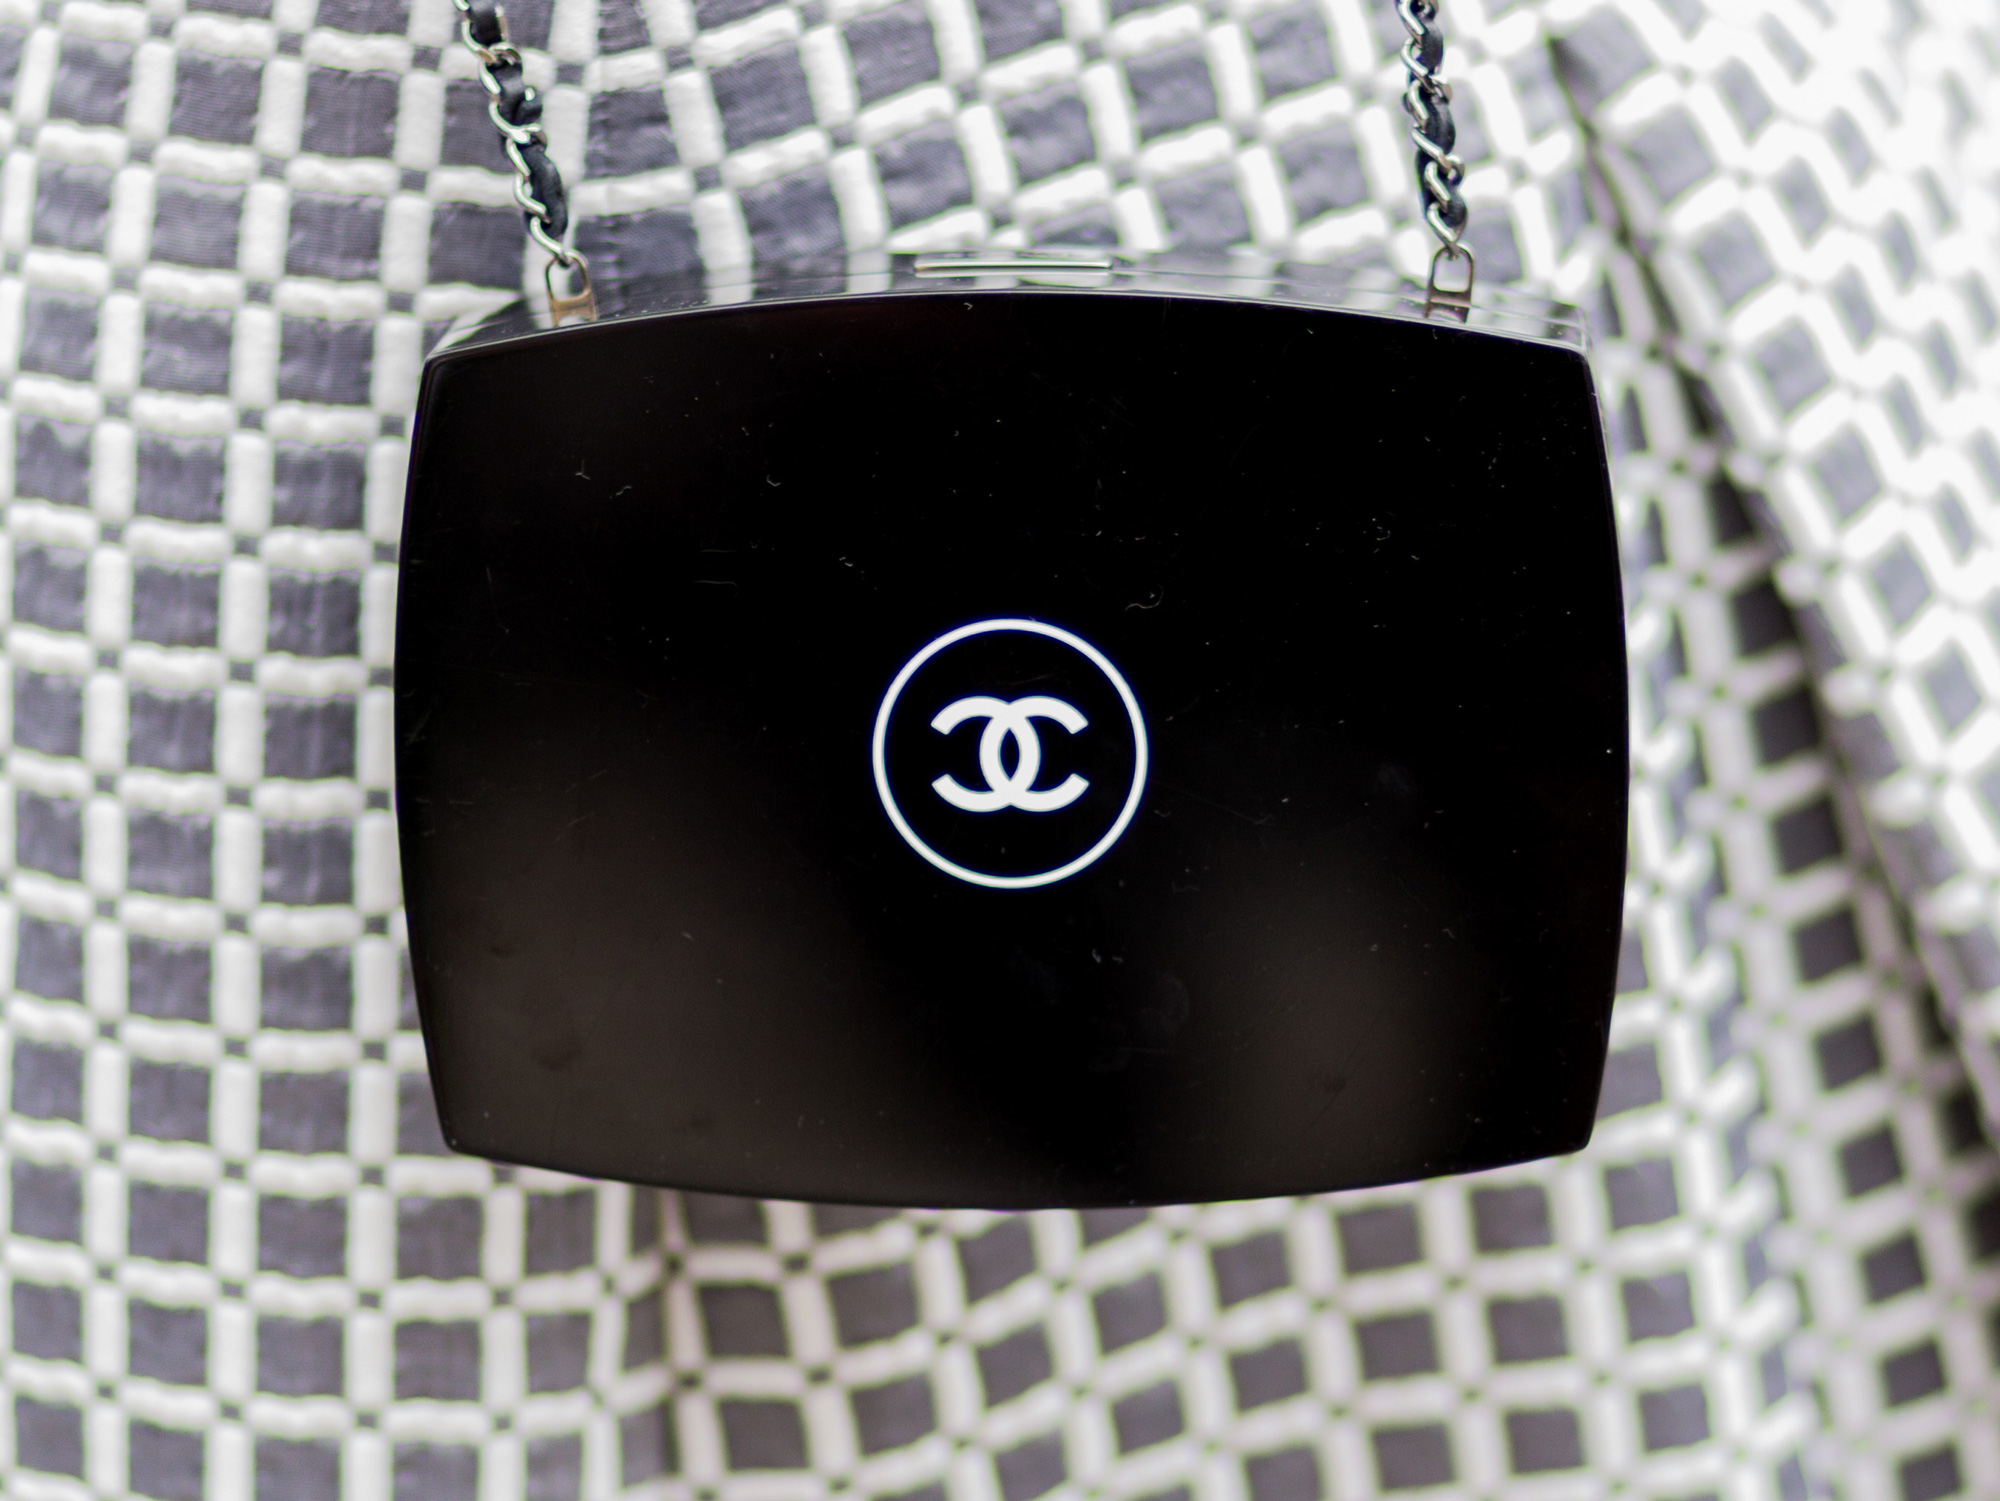 Chanel Loses EU Court Fight Over Logo Against Huawei - Bloomberg